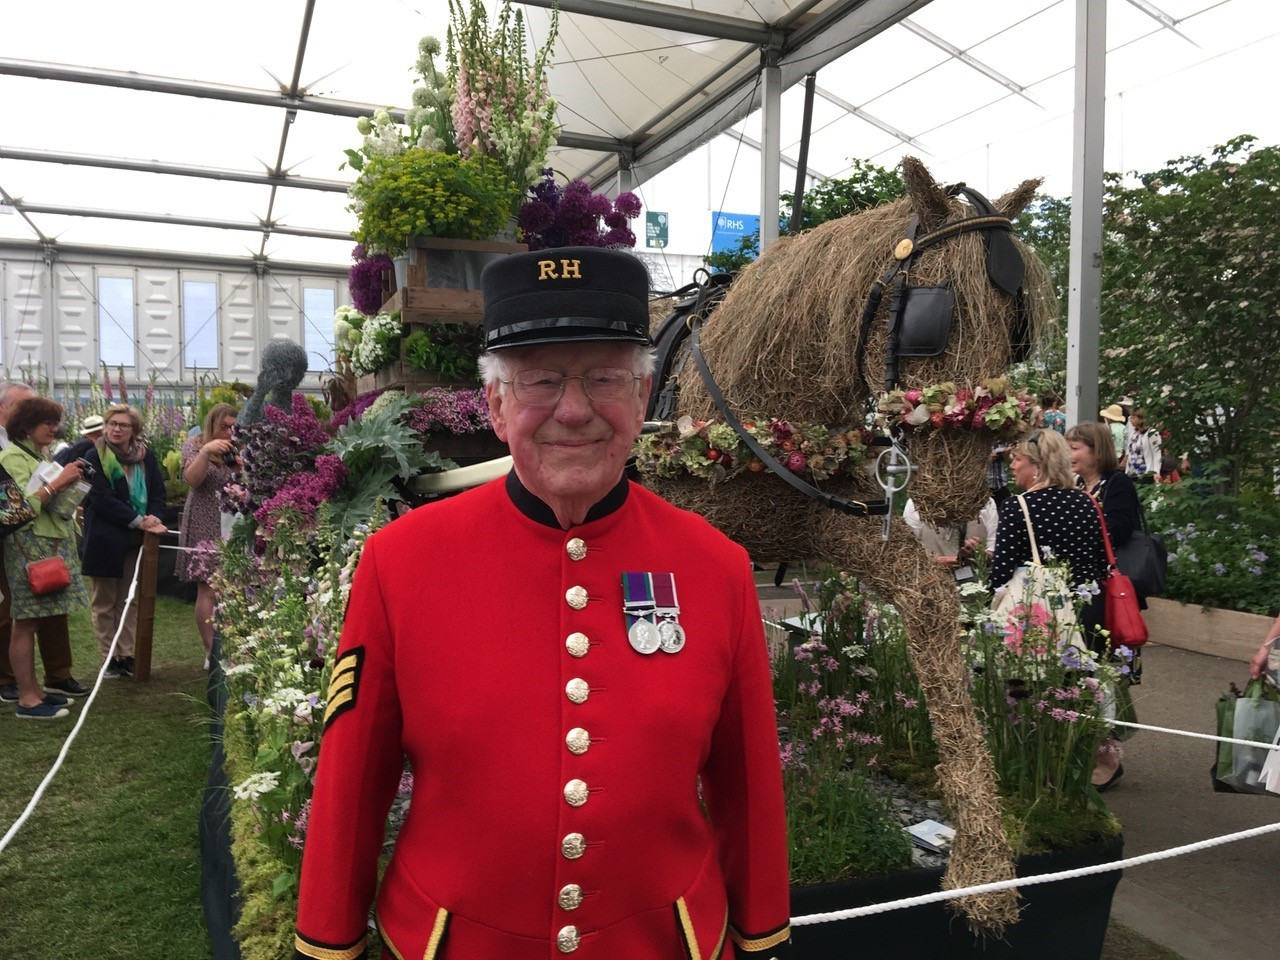 Gold winners at RHS Chelsea Flower Show